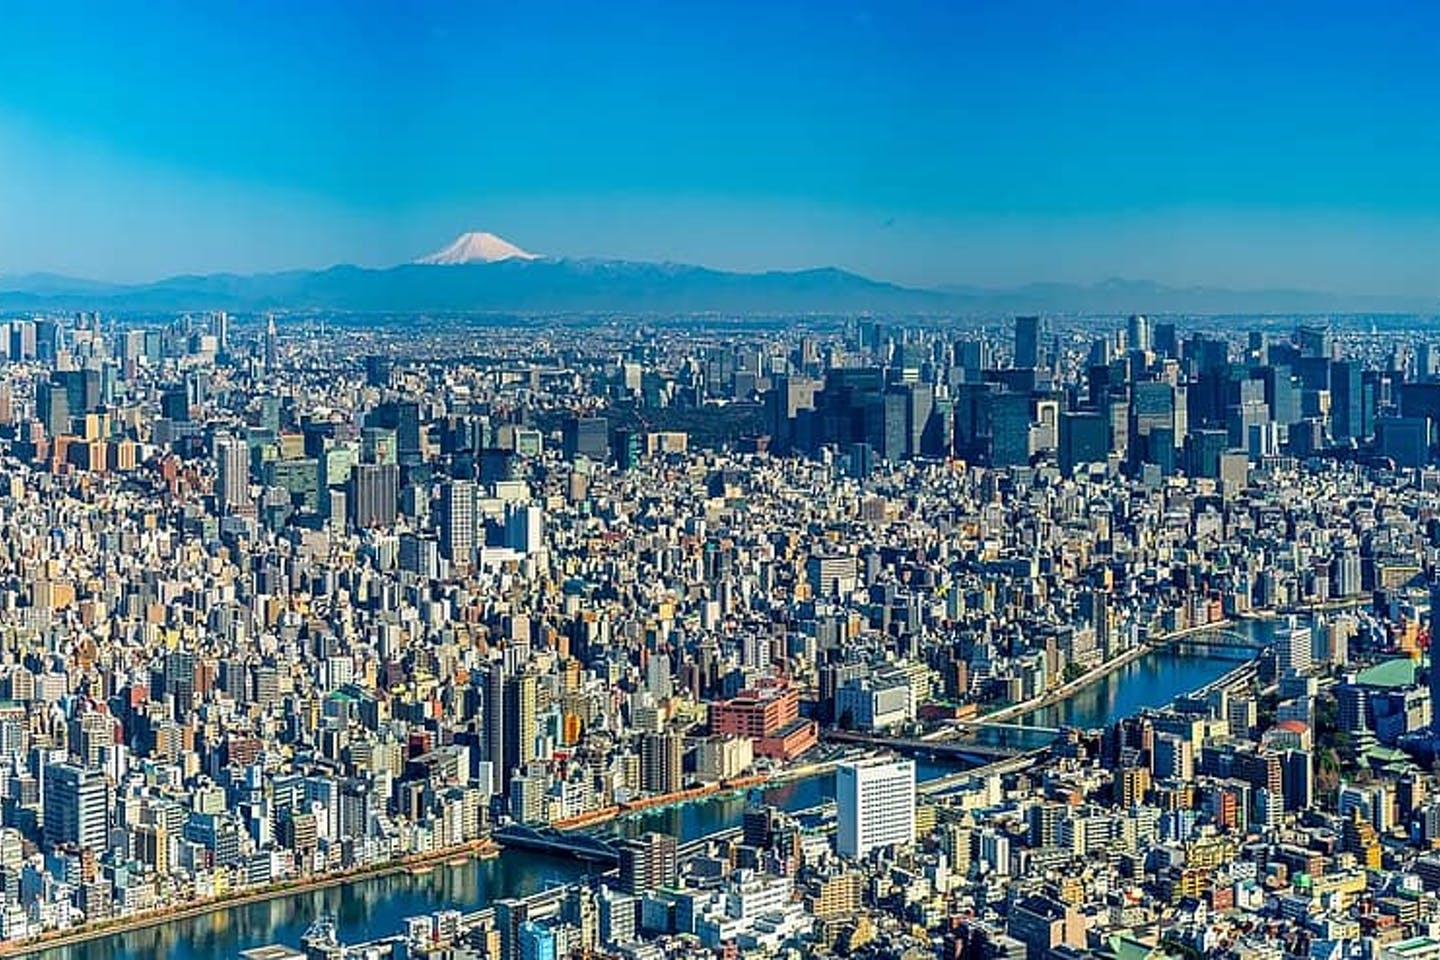 Tokyo, densely populated city